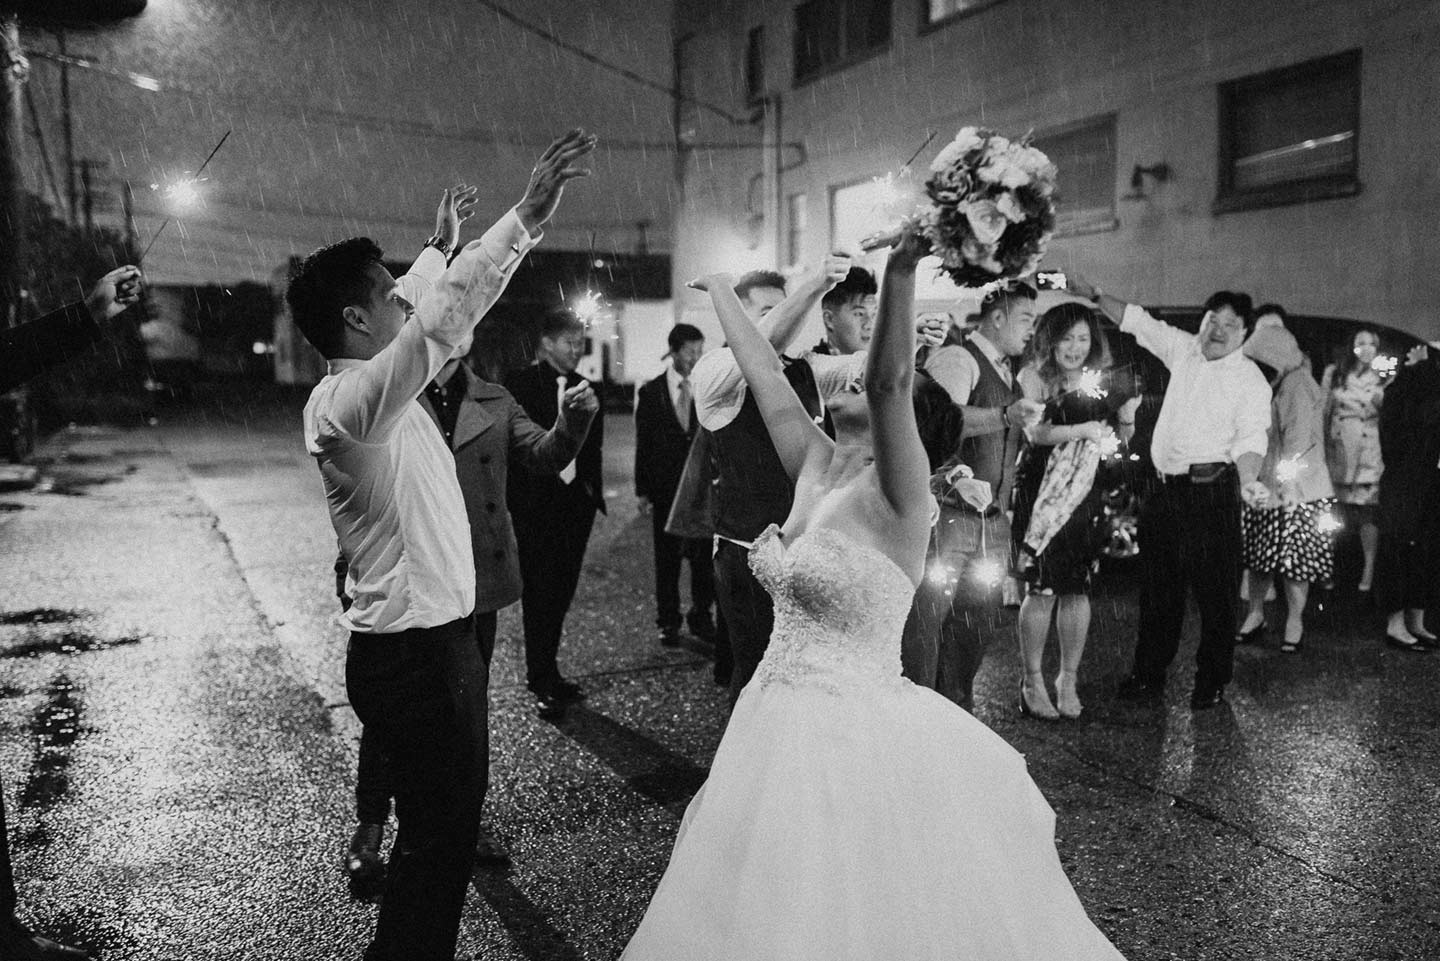 I love how this couple really embraced and enjoyed the rain on their wedding day. This moment made for a few really nice photos of their send-off as the reception came to an end.